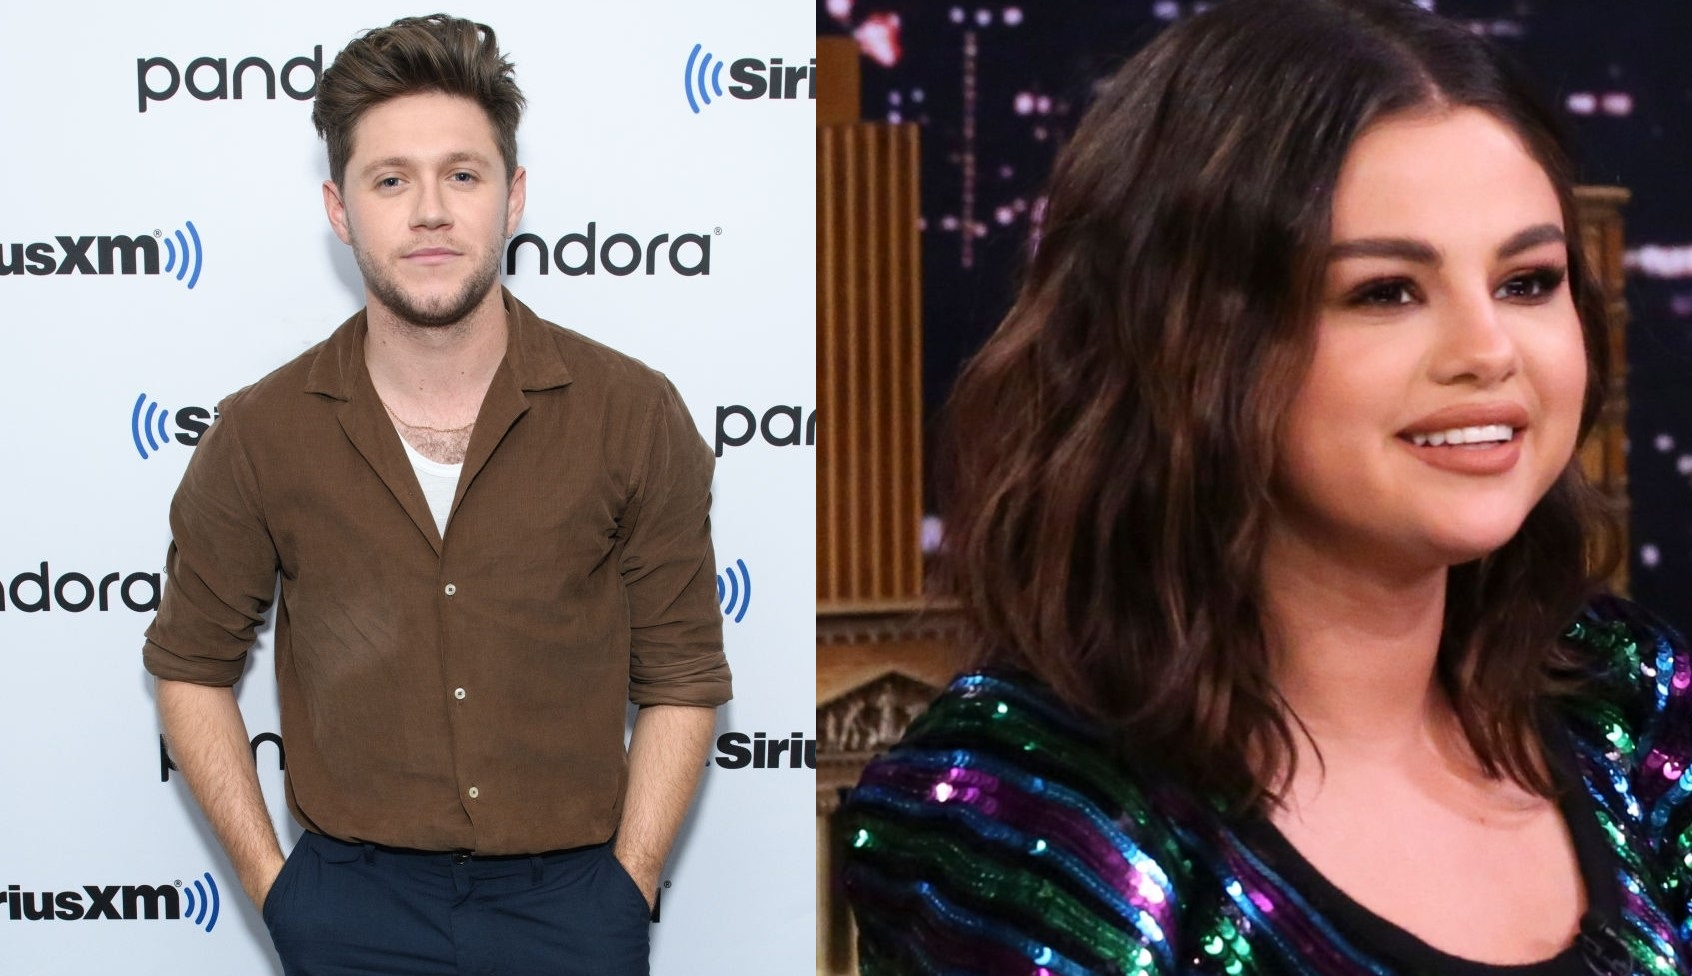 Selena Gomez and Niall Horan dating rumors spread after their latest picture